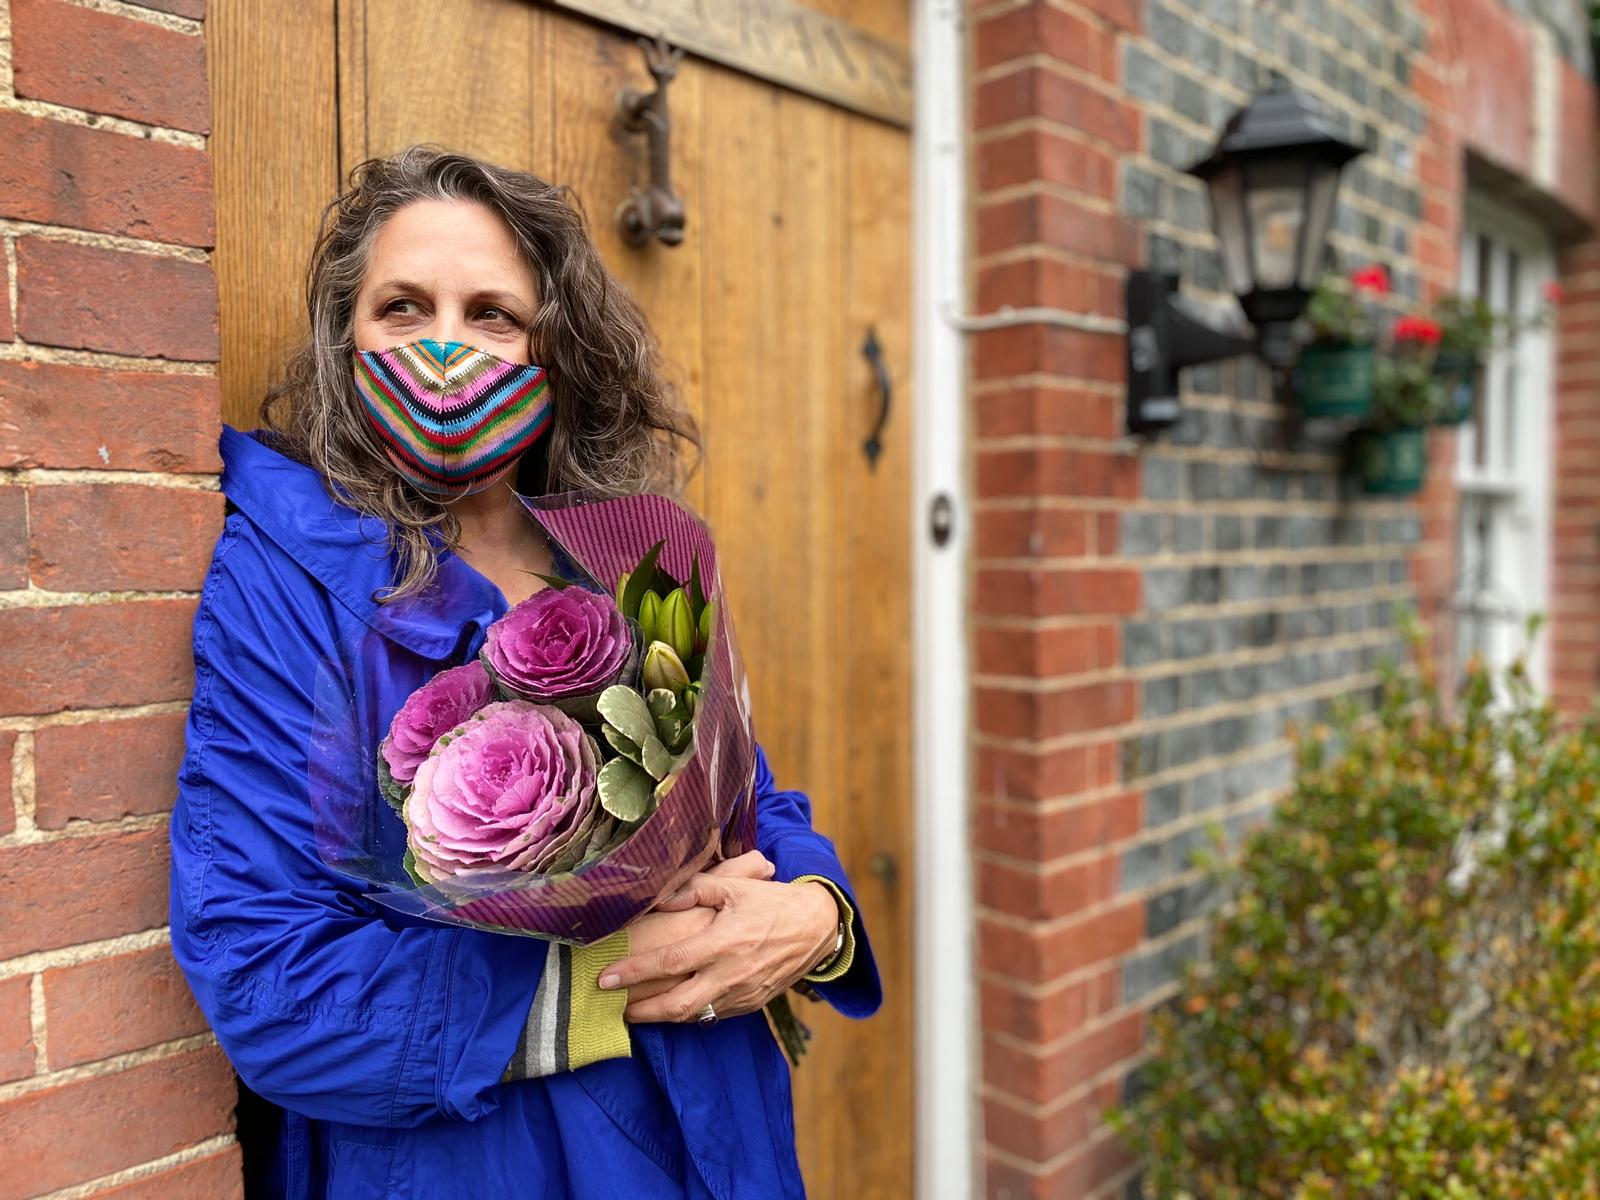 Lady wearing face mask, holding flowers